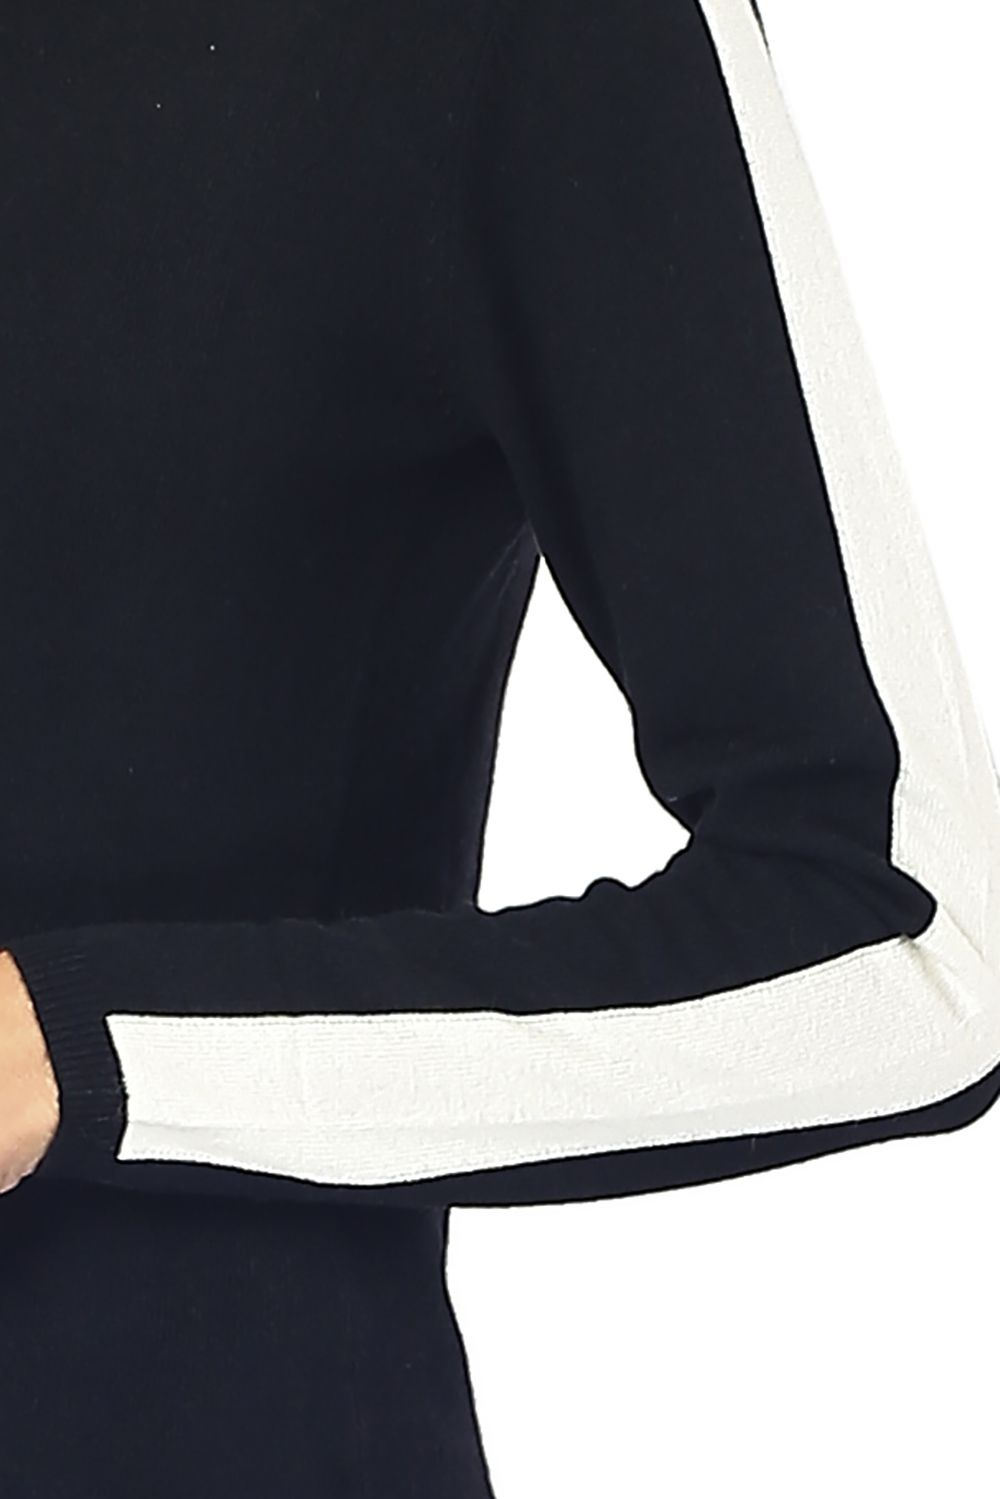 William De Faye Round Neck Sweater with Two-tone Sleeves in Black